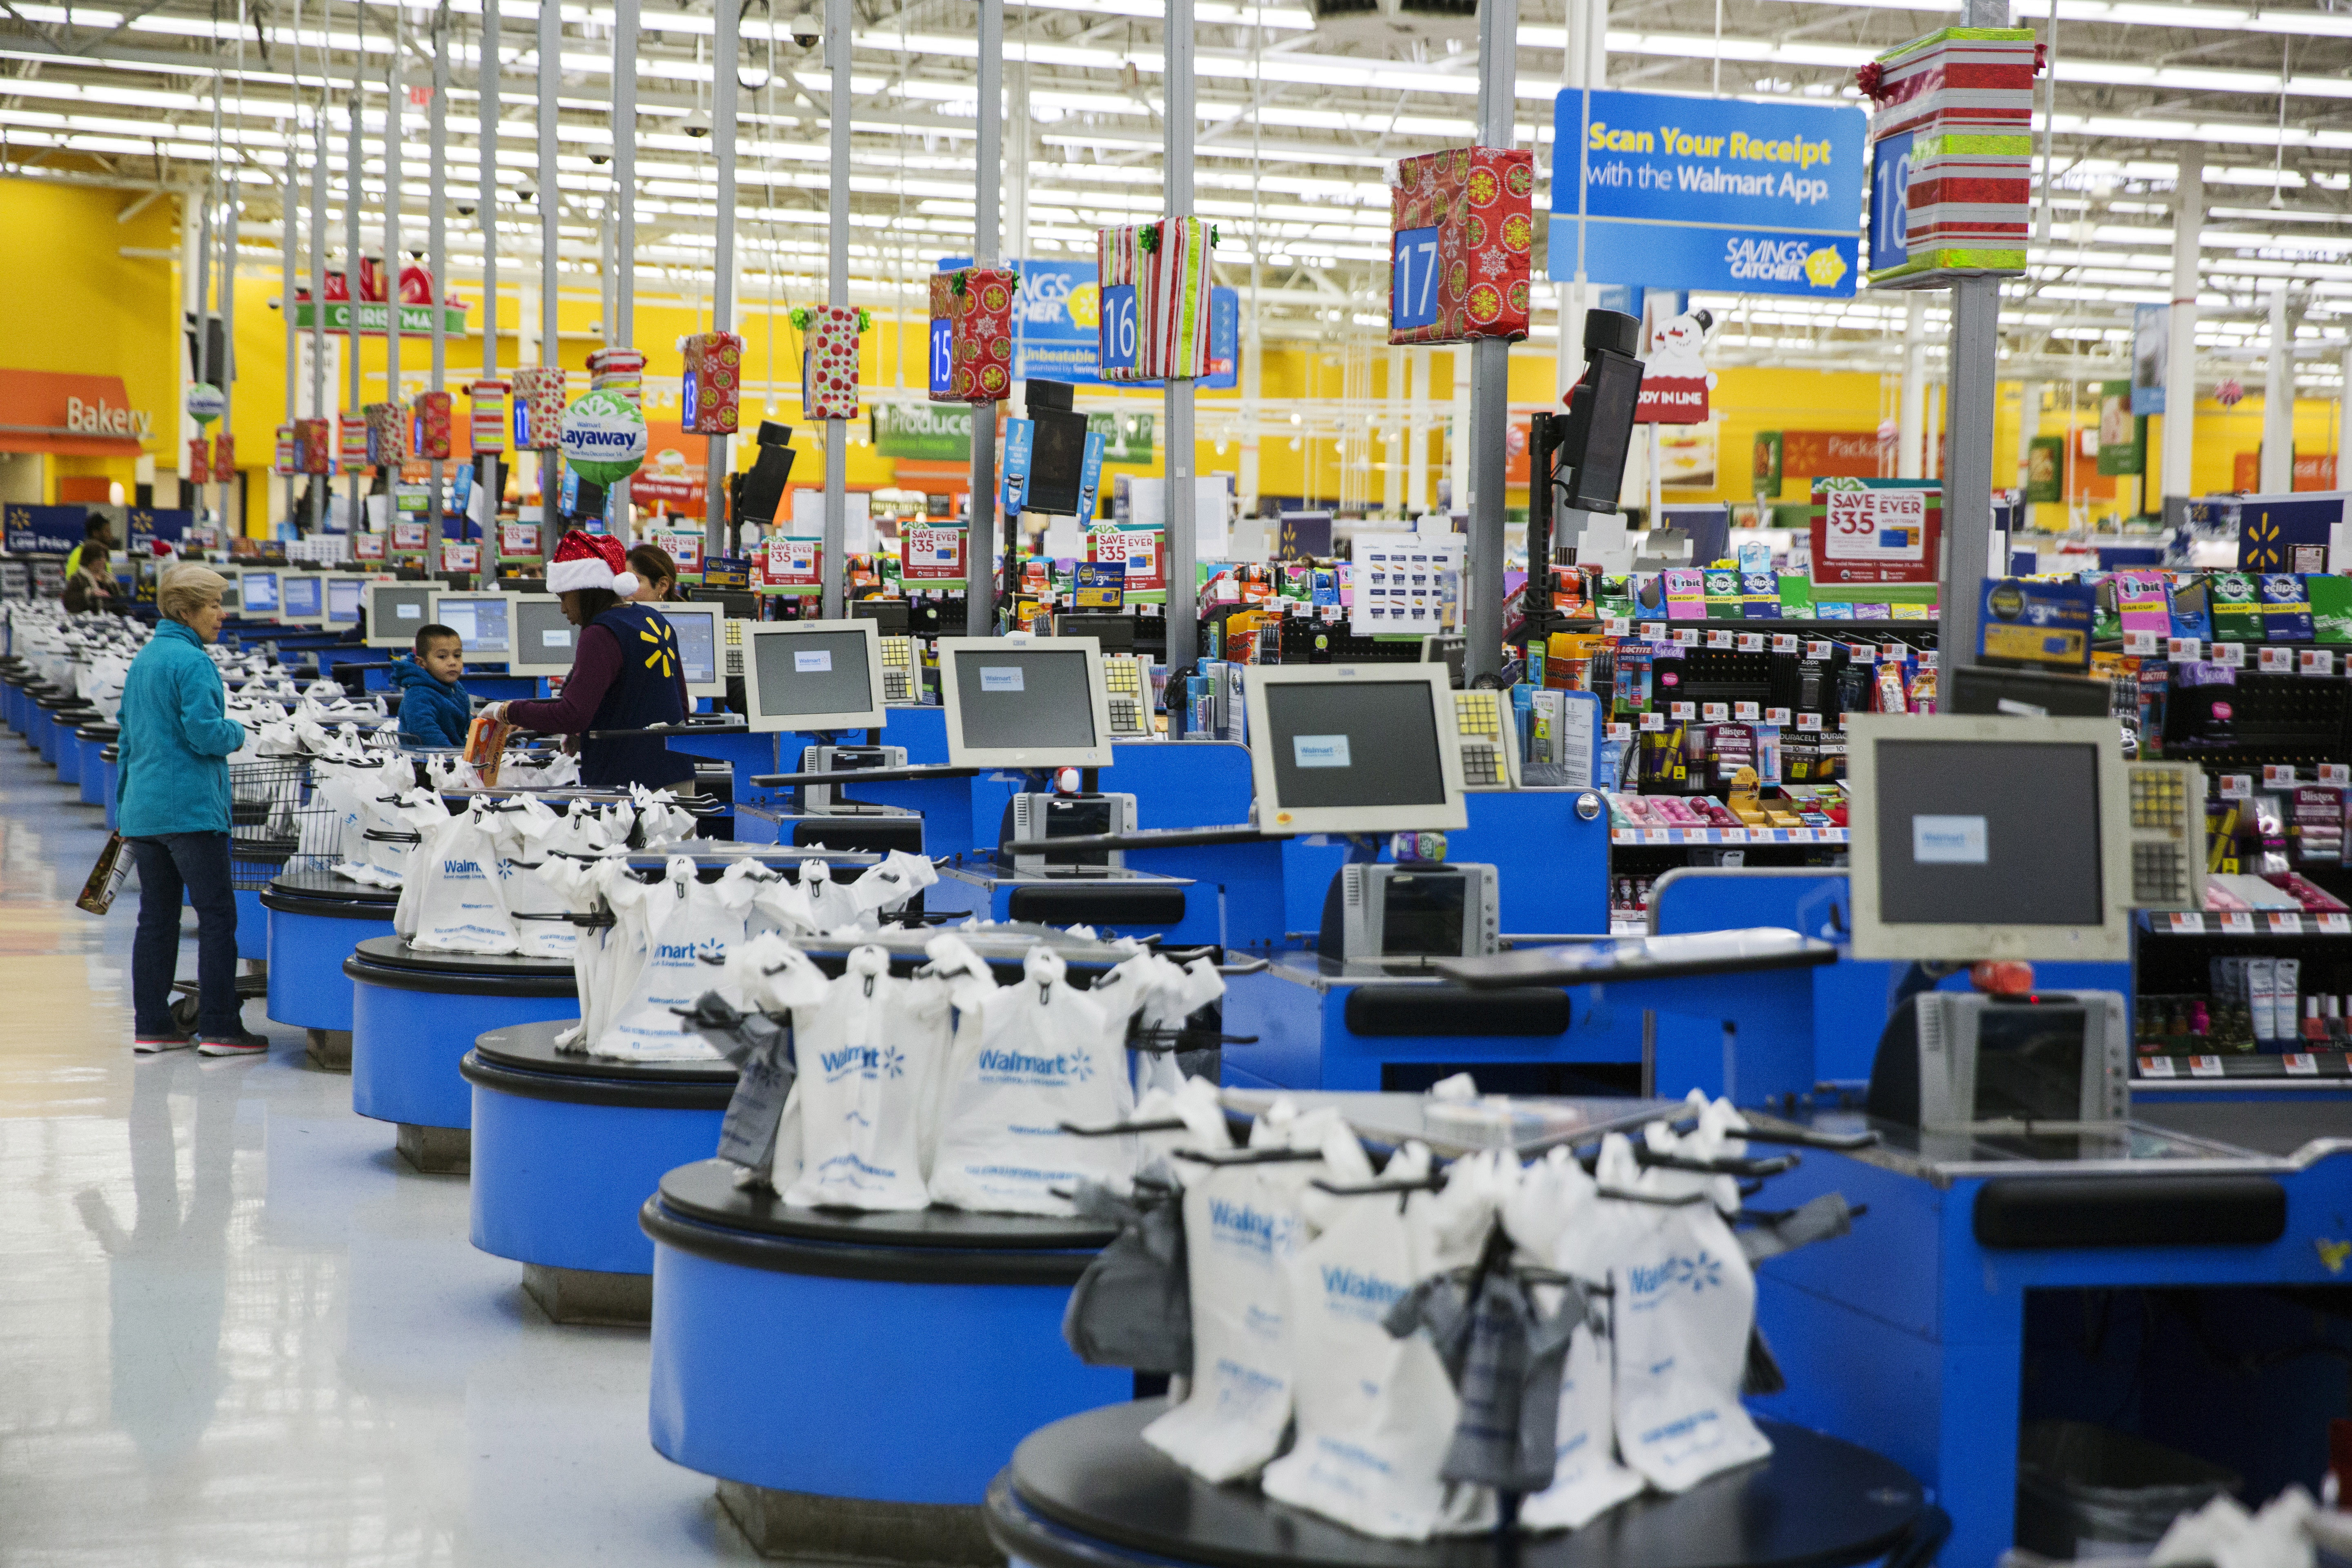 Walmart testing higher minimum wage for some employees